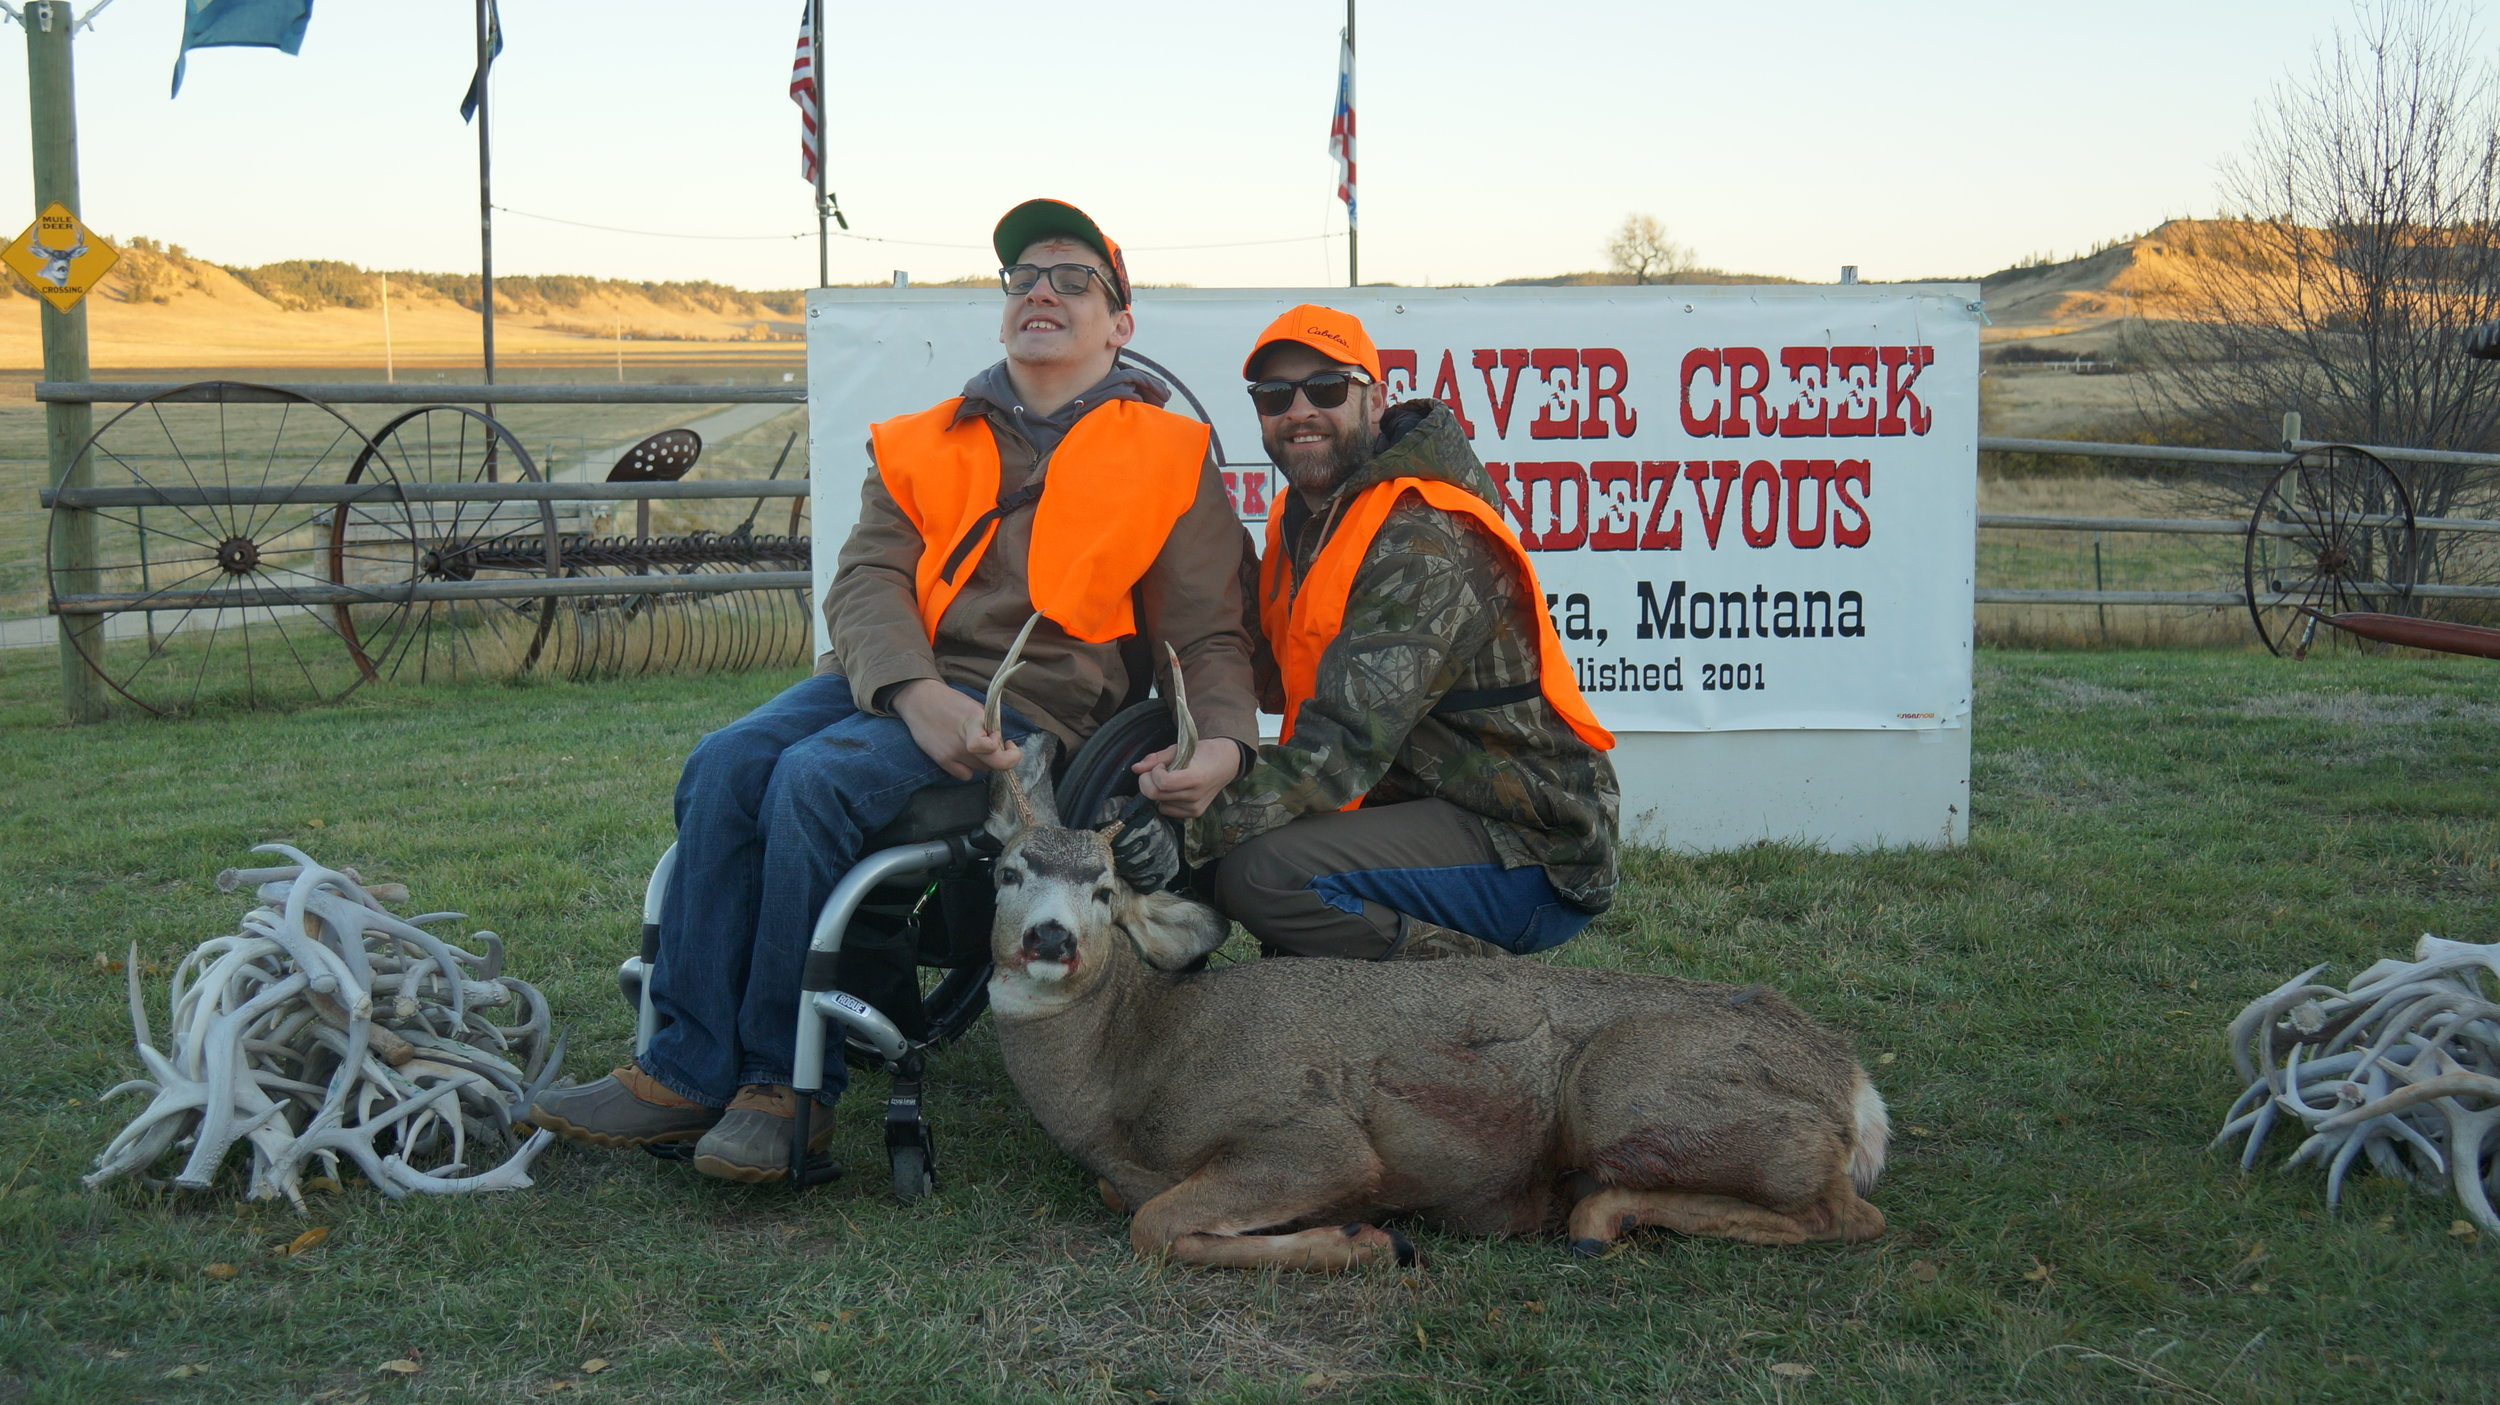 Duncan and Casey Cumby - In October of 2017 my son Duncan and I had a once in a lifetime opportunity to be a part of The Beaver Creek Rendezvous. It was an experience full of memories, friends and opportunities that will last a lifetime for both of us. We were overwhelmed with the love and compassion exhibited from the volunteer staff and entire community of Ekalaka, Montana. Their desire to make dreams come true and to make a positive impact in the lives of others is an example that others can only strive to achieve. We would like to thank everyone involved for a successful harvest of Duncan's first mule deer and a memory that will be with us for the rest of our lives. – Casey Cumby